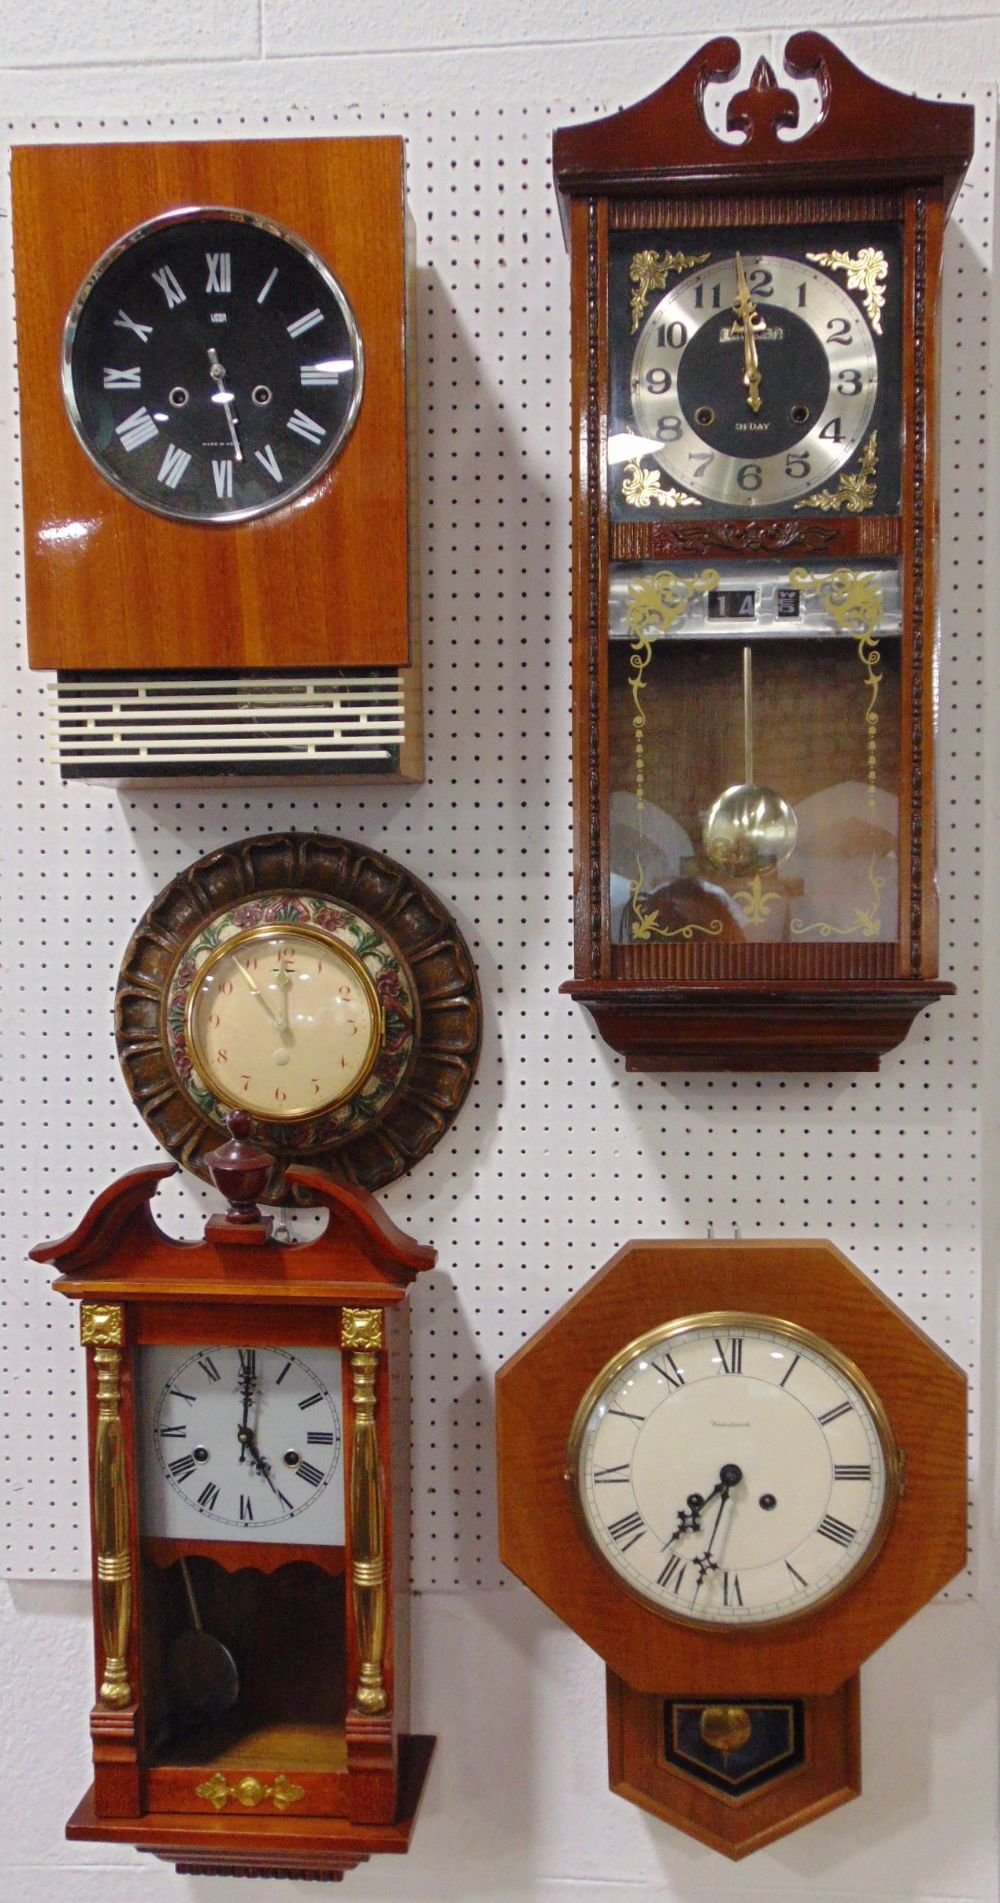 A collection of five various vintage wall clocks to include a 31 day clock with day/date aperture, a